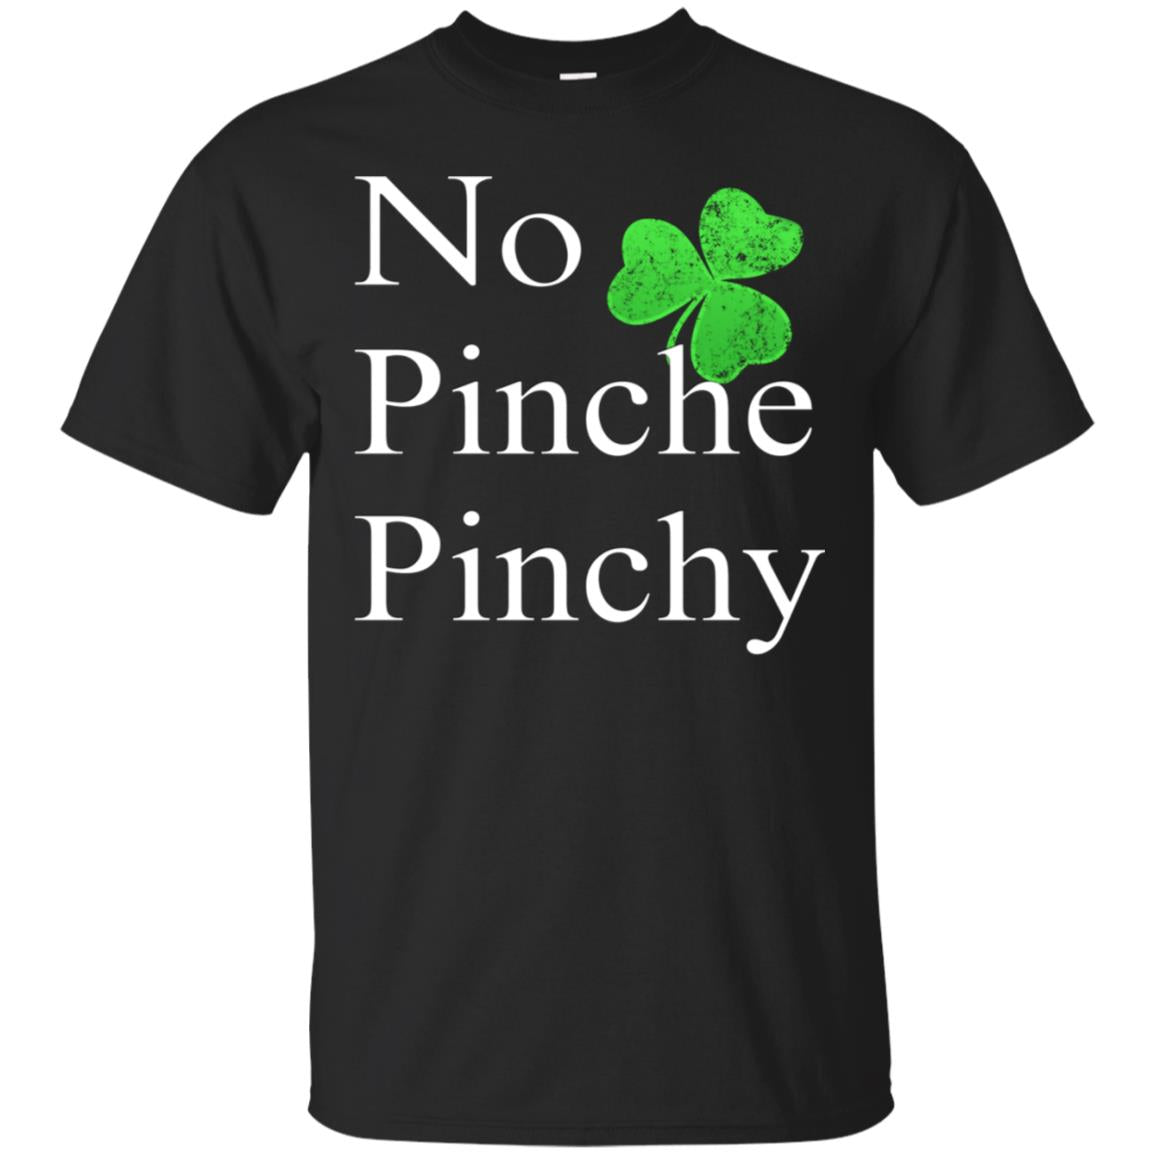 St Patricks Day T-Shirt No Pinche Pinchy Mexican Irish Shirt 99promocode